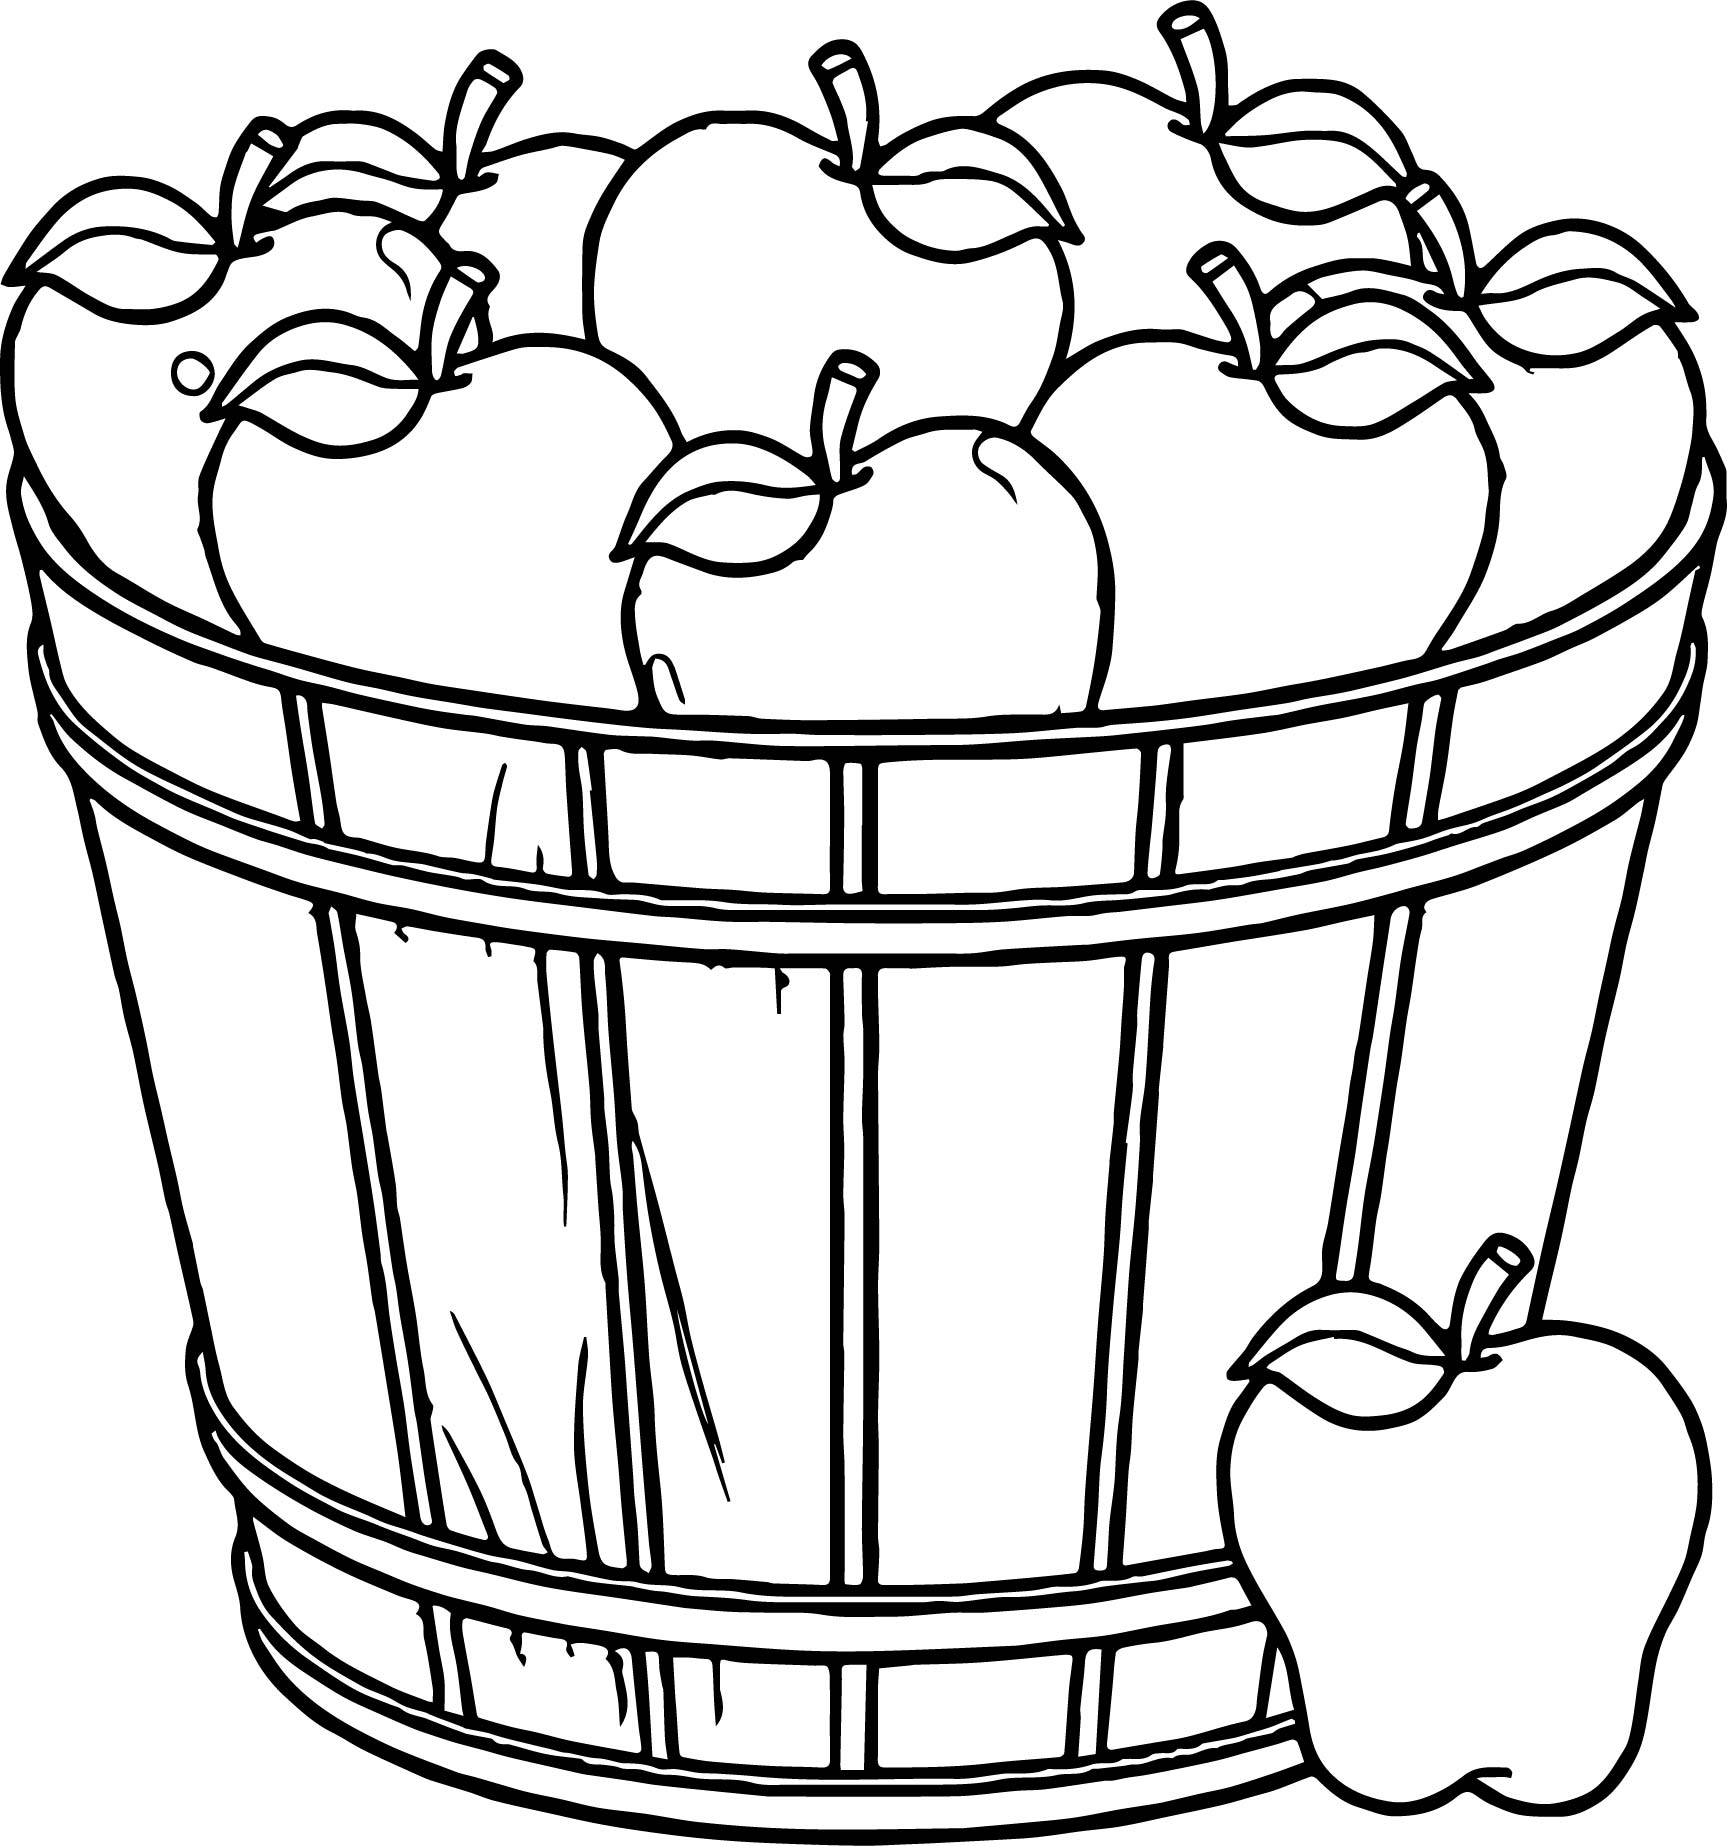 fruit bowl pictures to colour fruit bowl drawing at getdrawings free download fruit to bowl pictures colour